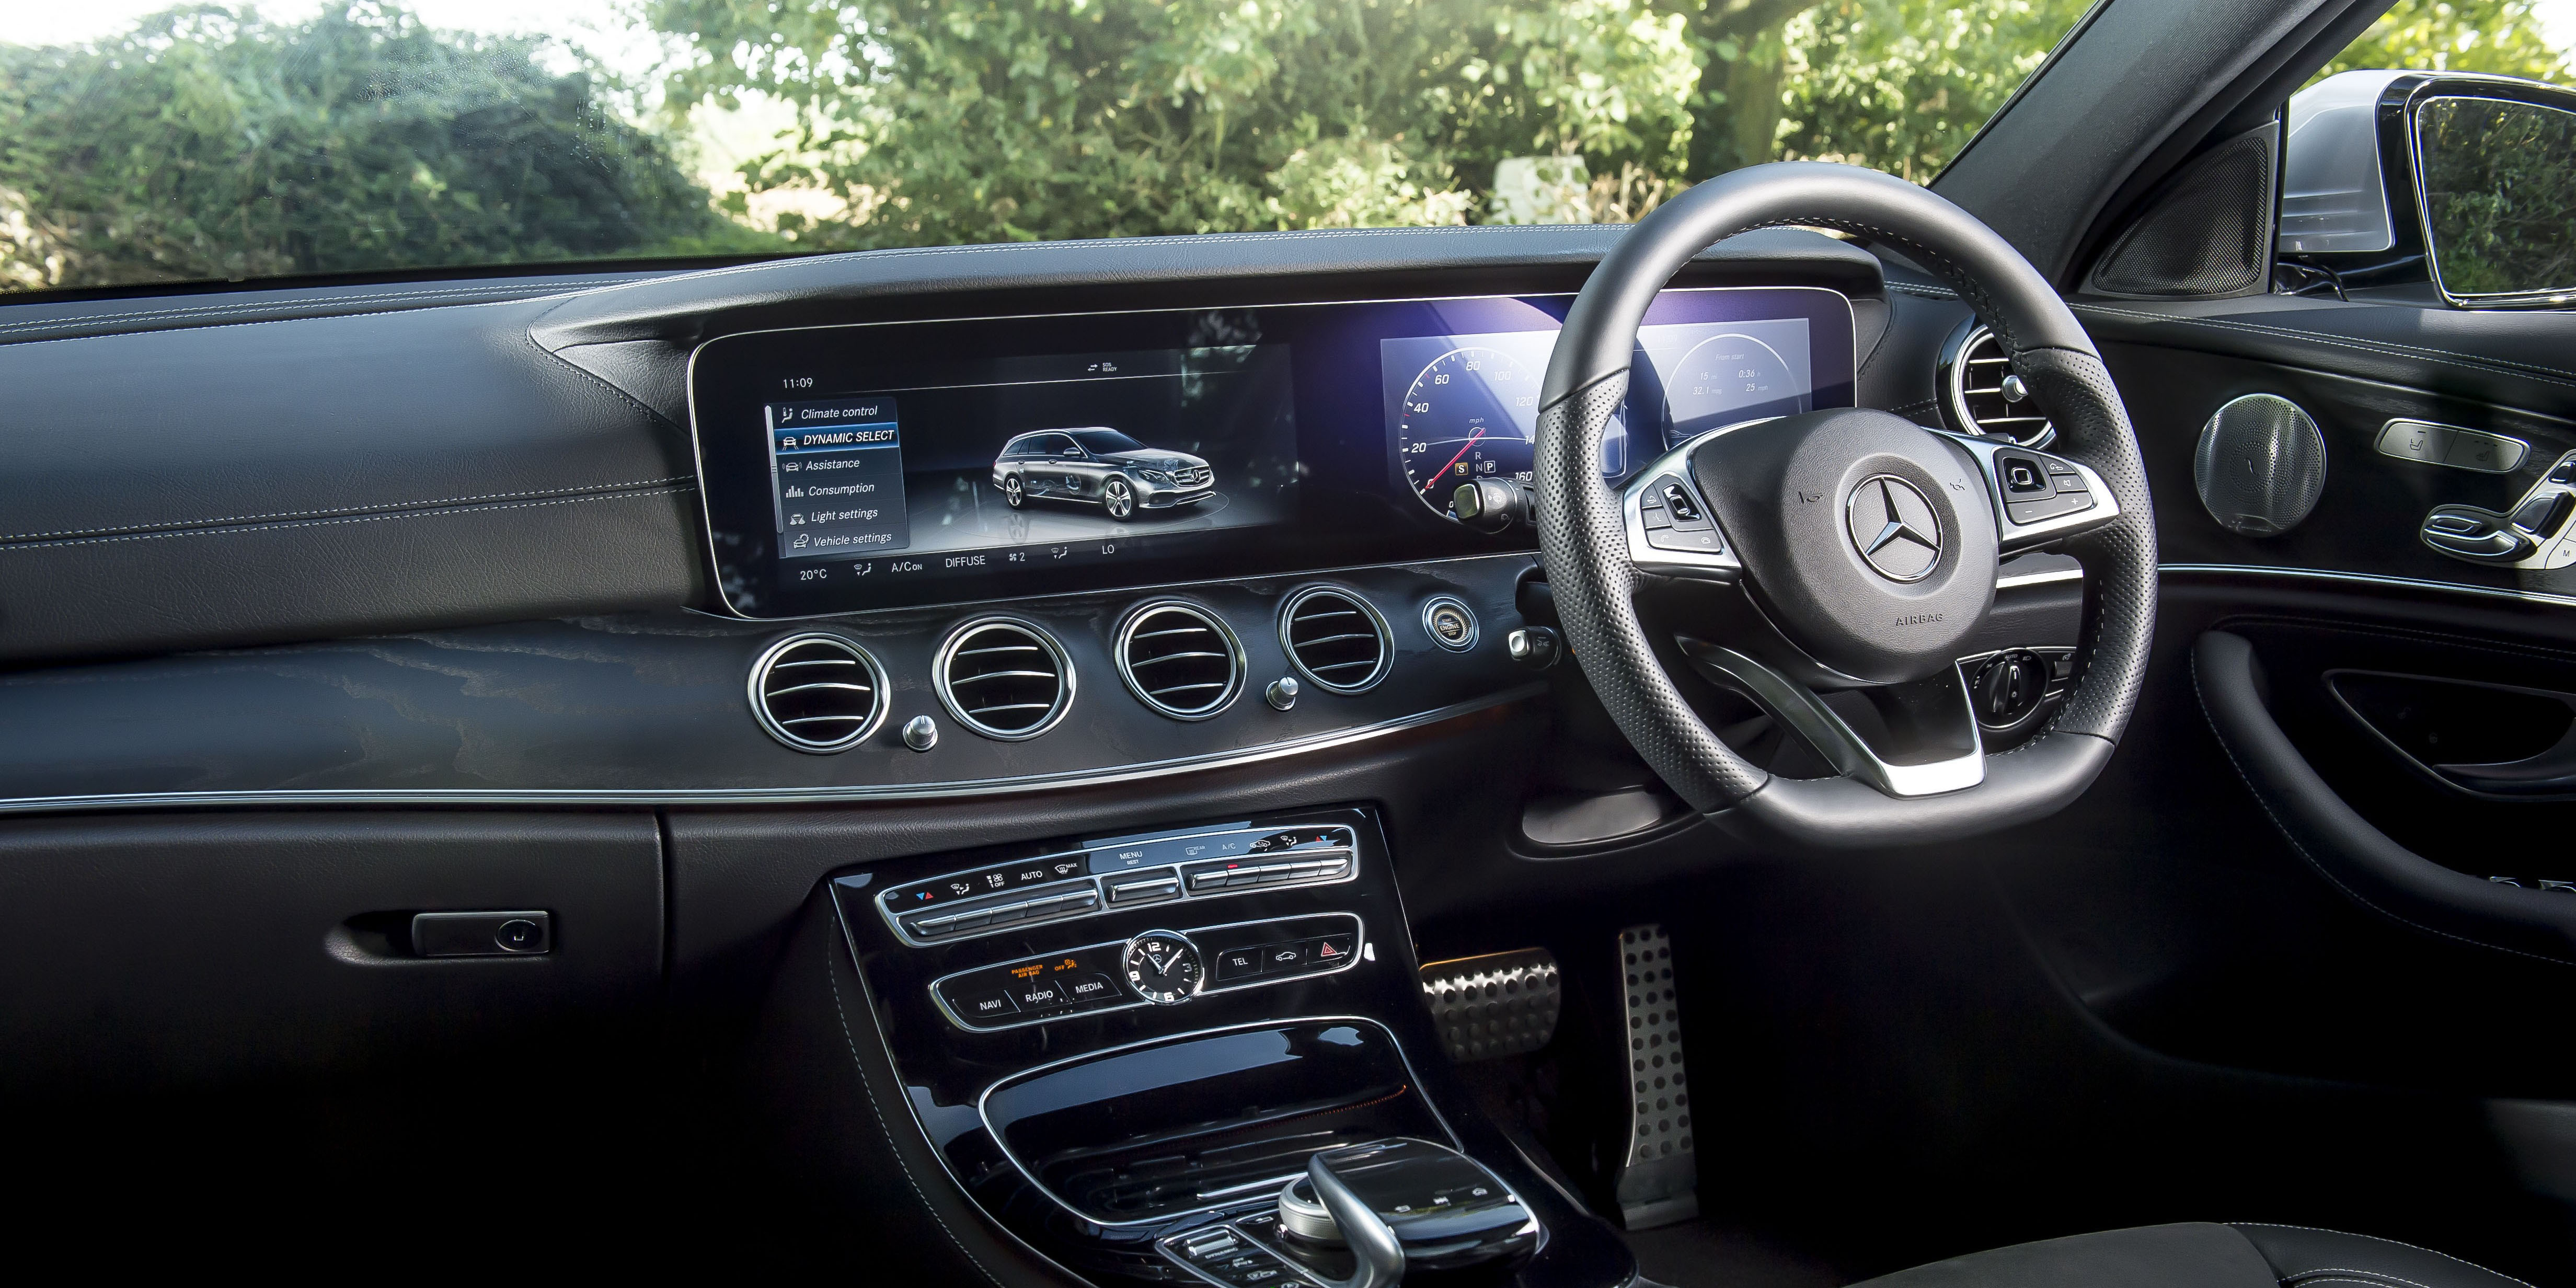 Mercedes A-Class Sedan (V177) interior photo